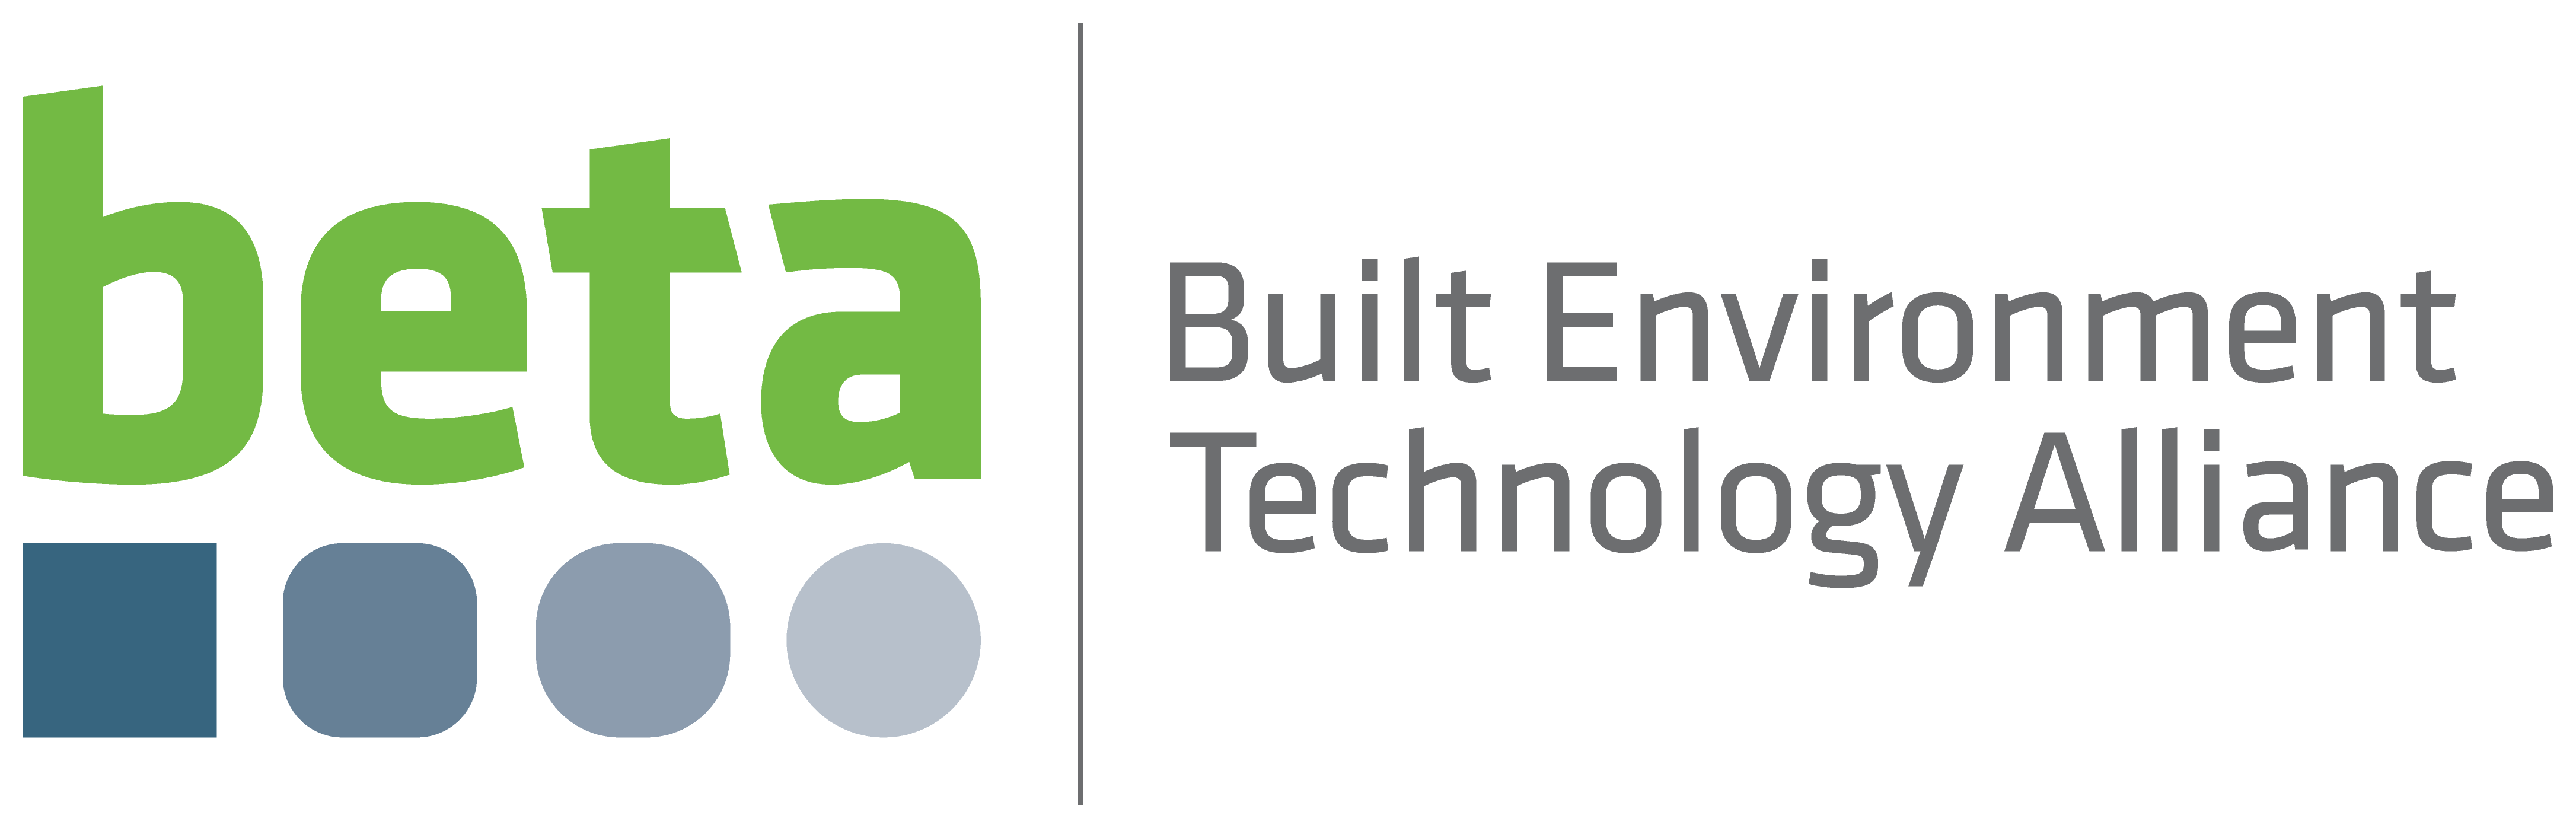 Built Environment Technology Alliance